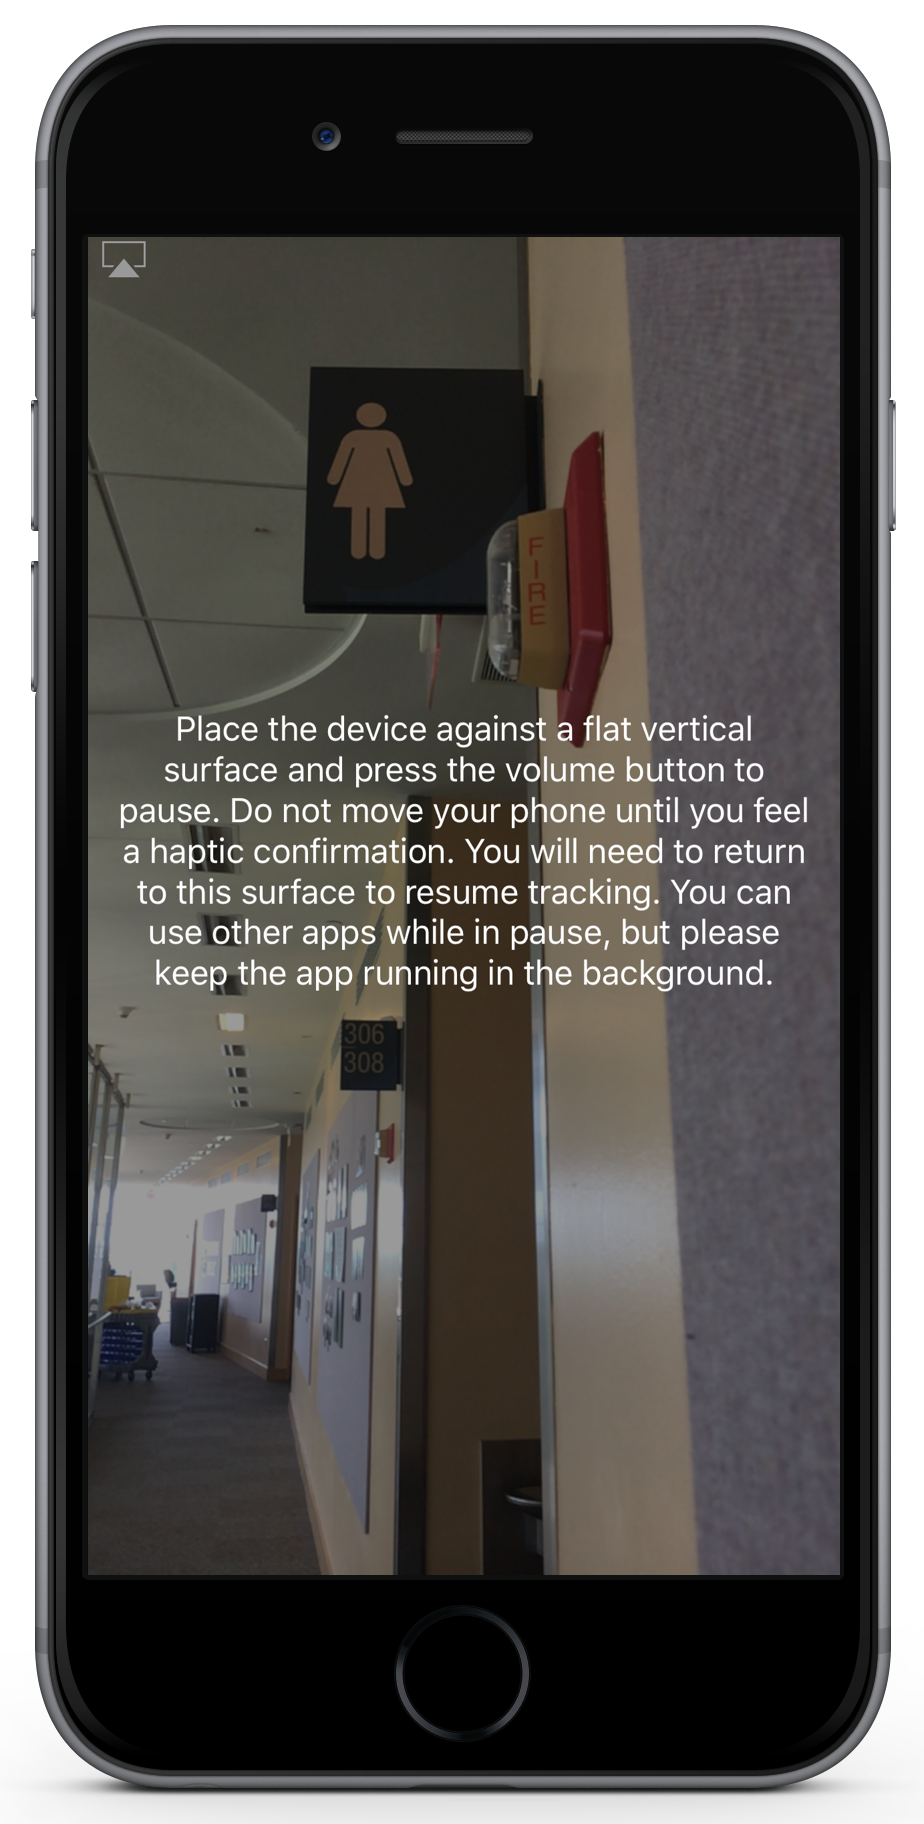 "a screenshot of the pause feature.  The image shows a hallway.  In the center of the image is text that says ""Place the device against a flat vertical surface and press the volume button to pause.  Do not move your phone until you feel a haptic confirmation.  You will need to return to this surface to resume tracking.  You can use other apps while in pause, but please keep the app running in the background."""